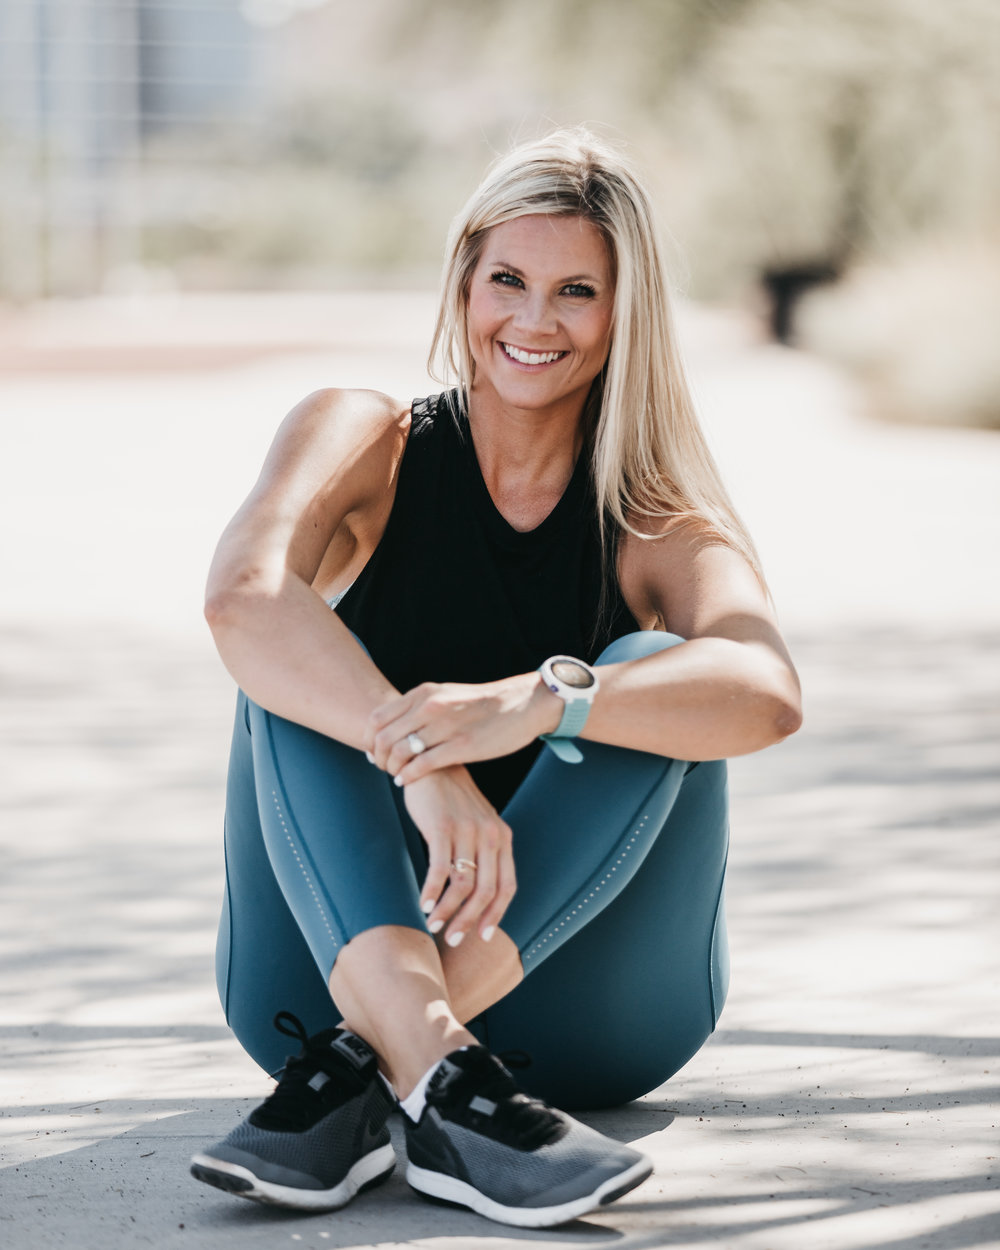 Exclusive Holiday Discount - Thanks for being such a ROCKSTAR client! Let's keep your momentum going or if it's been a while, let's get back on track in the New Year, and let's do it together! Let's CRUSH our health goals in 2019 as a community of strong, empowered and motivated women. Make it happen!